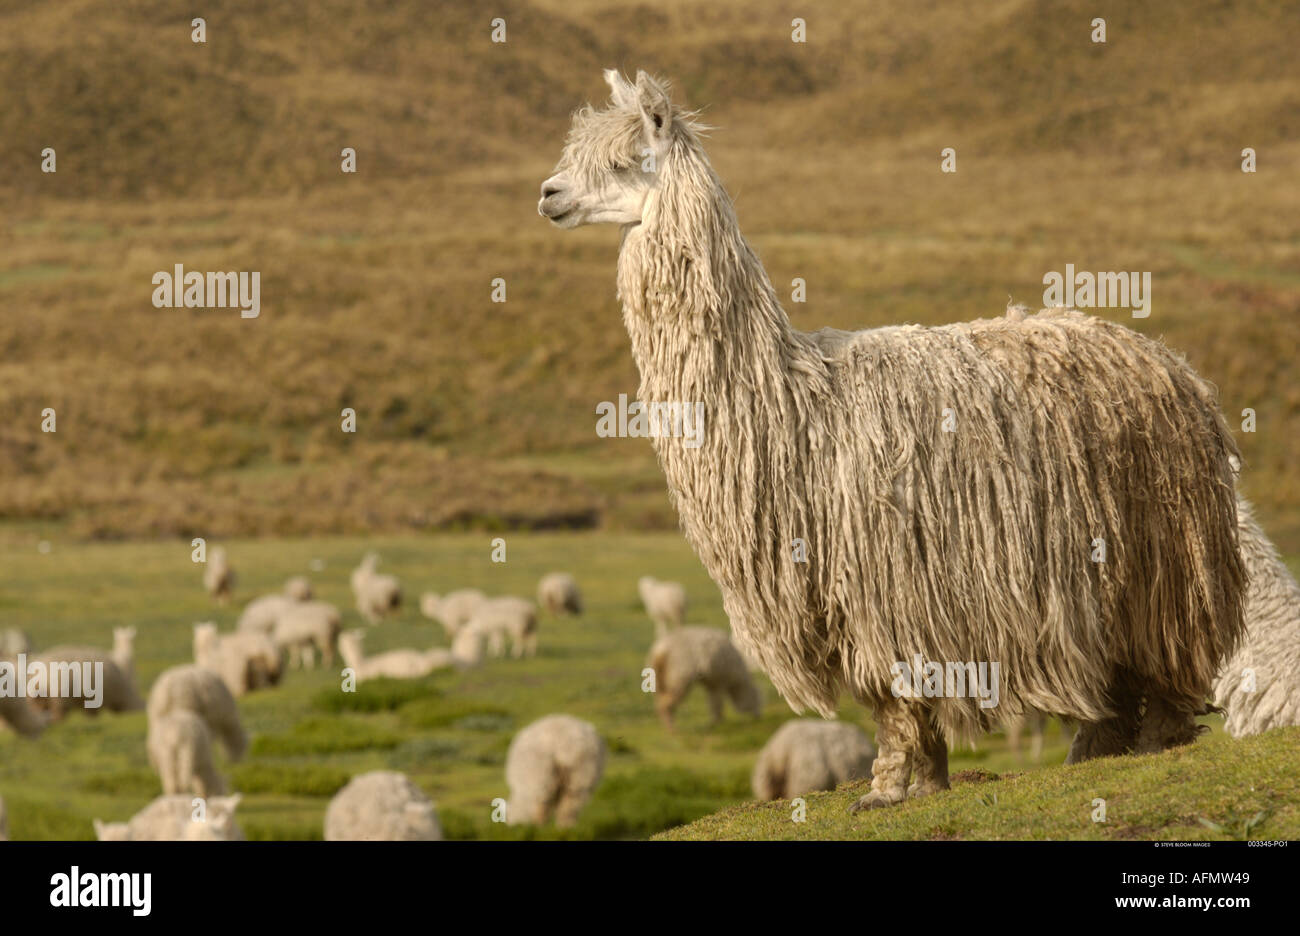 Alpaca Suri a long haired breed of alpaca base of Cotopaxi Volcano Andes Ecuador South America Stock Photo